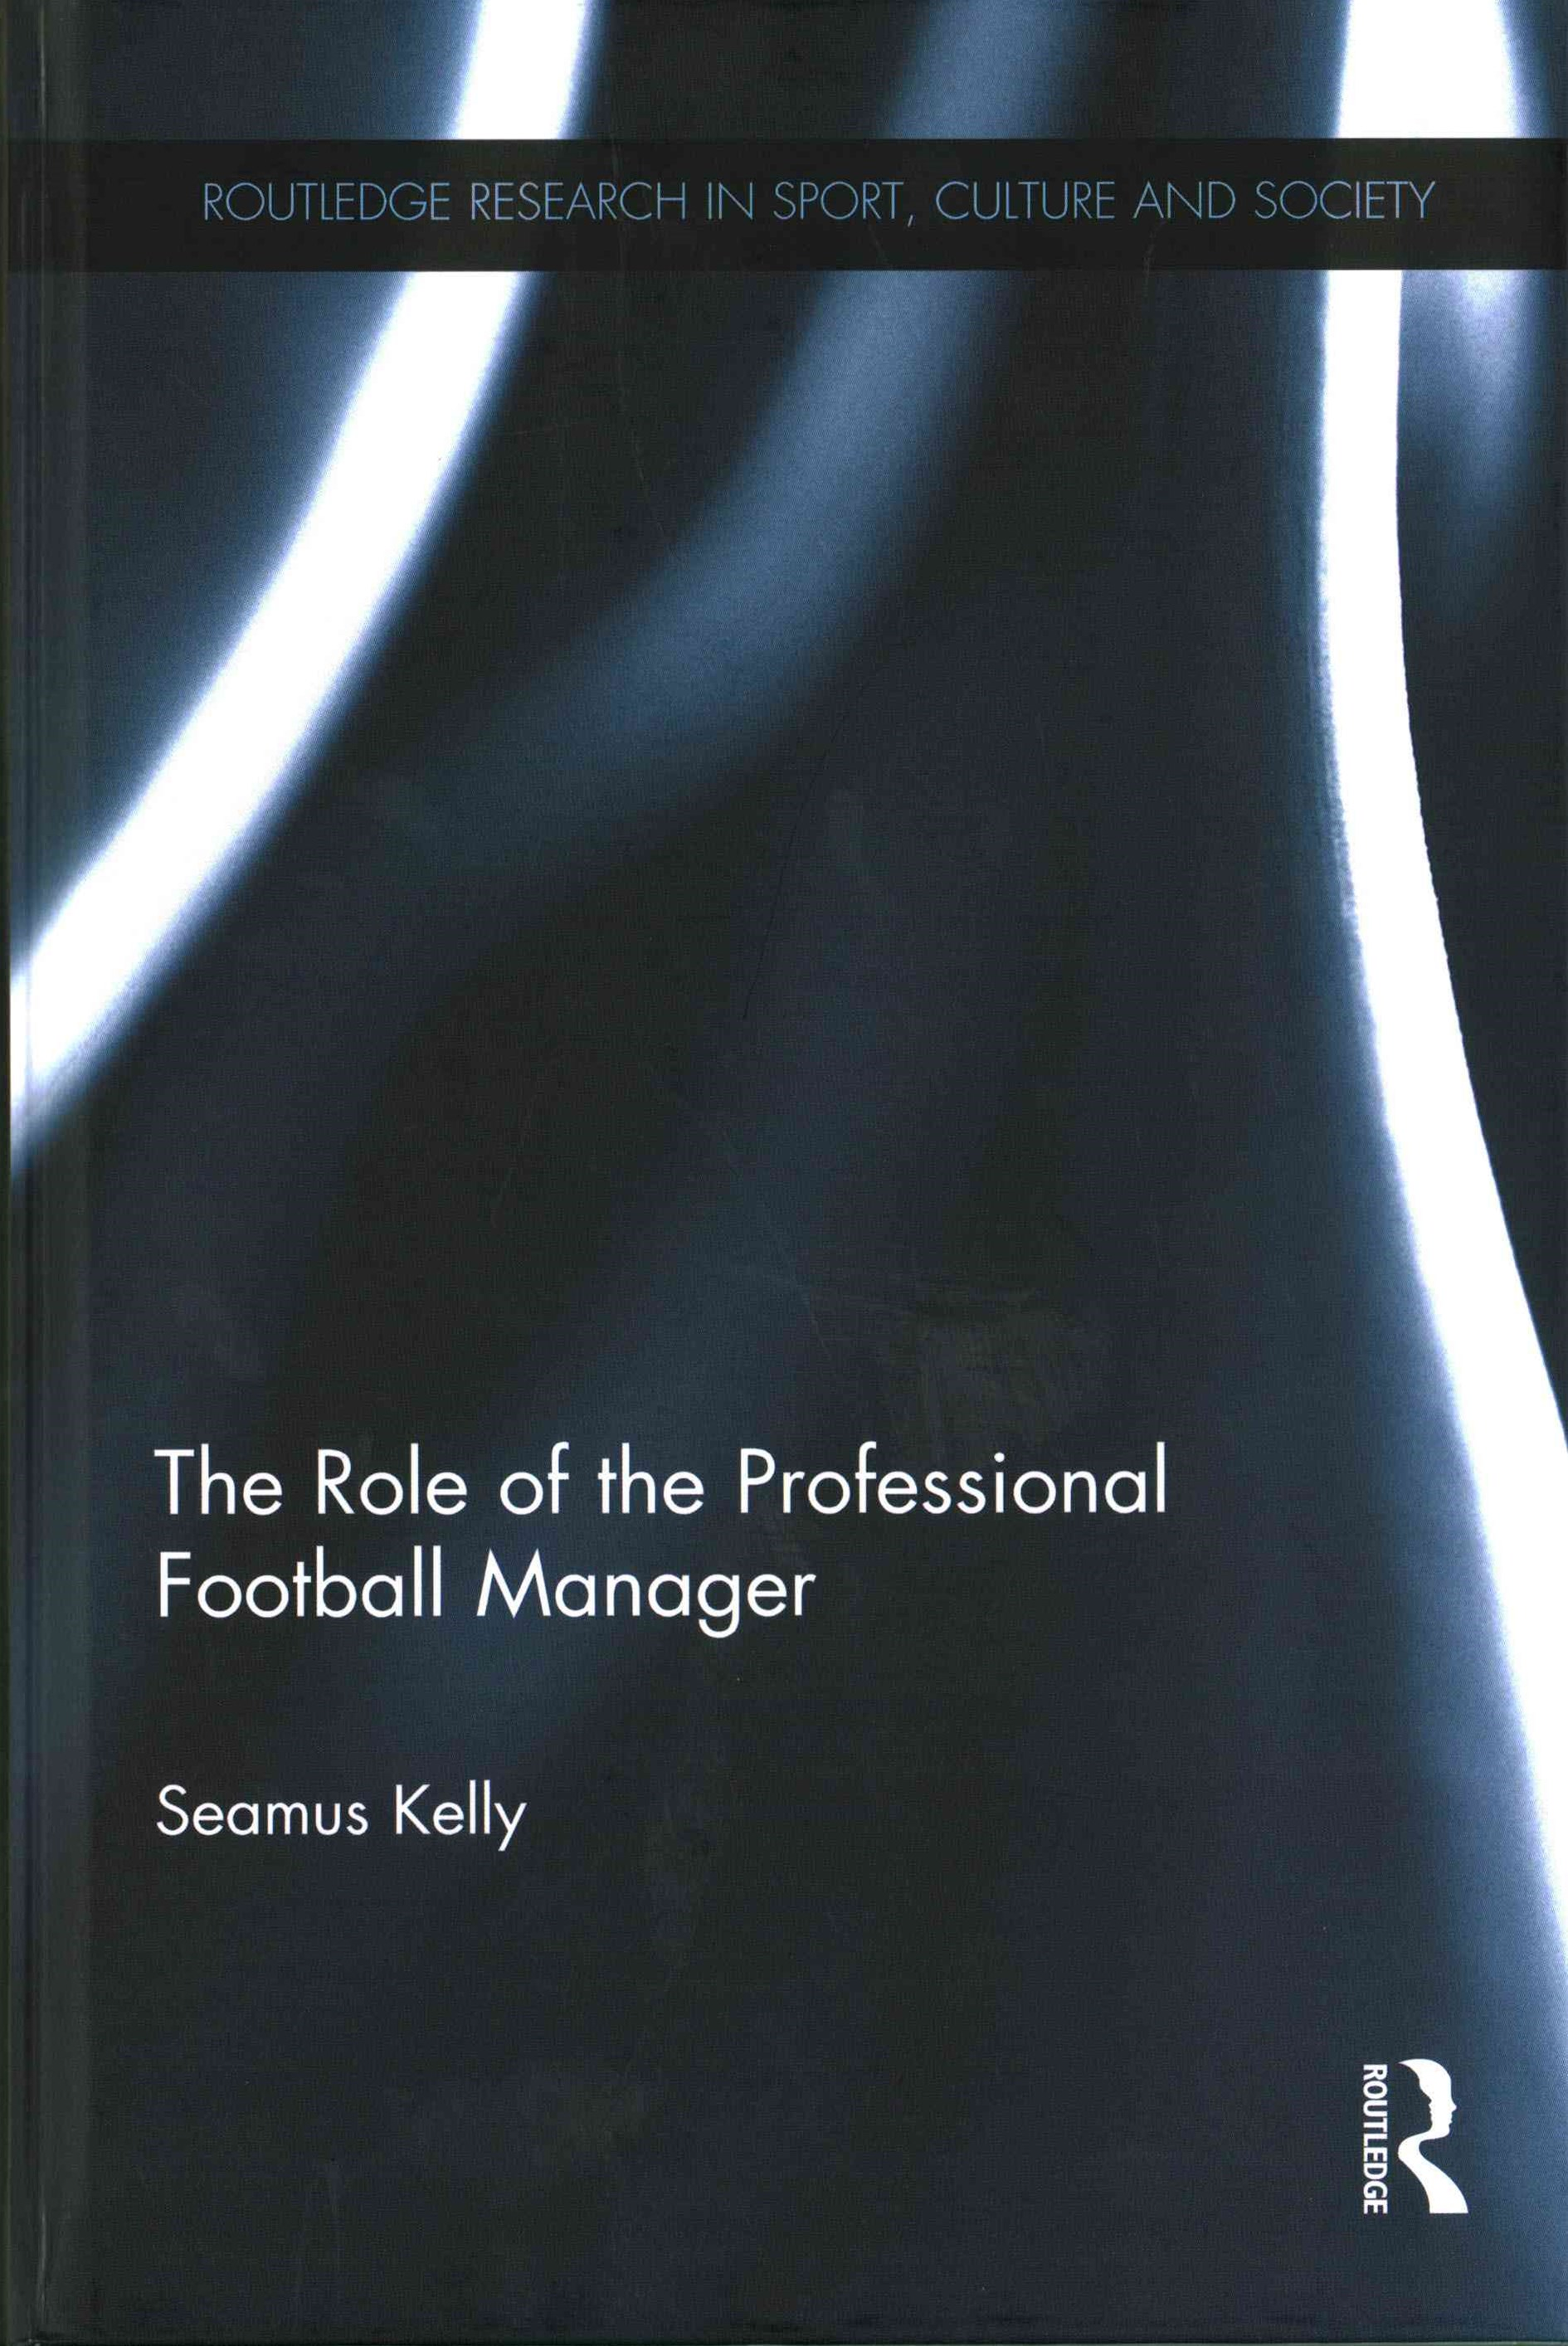 Role of the Professional Football Manager